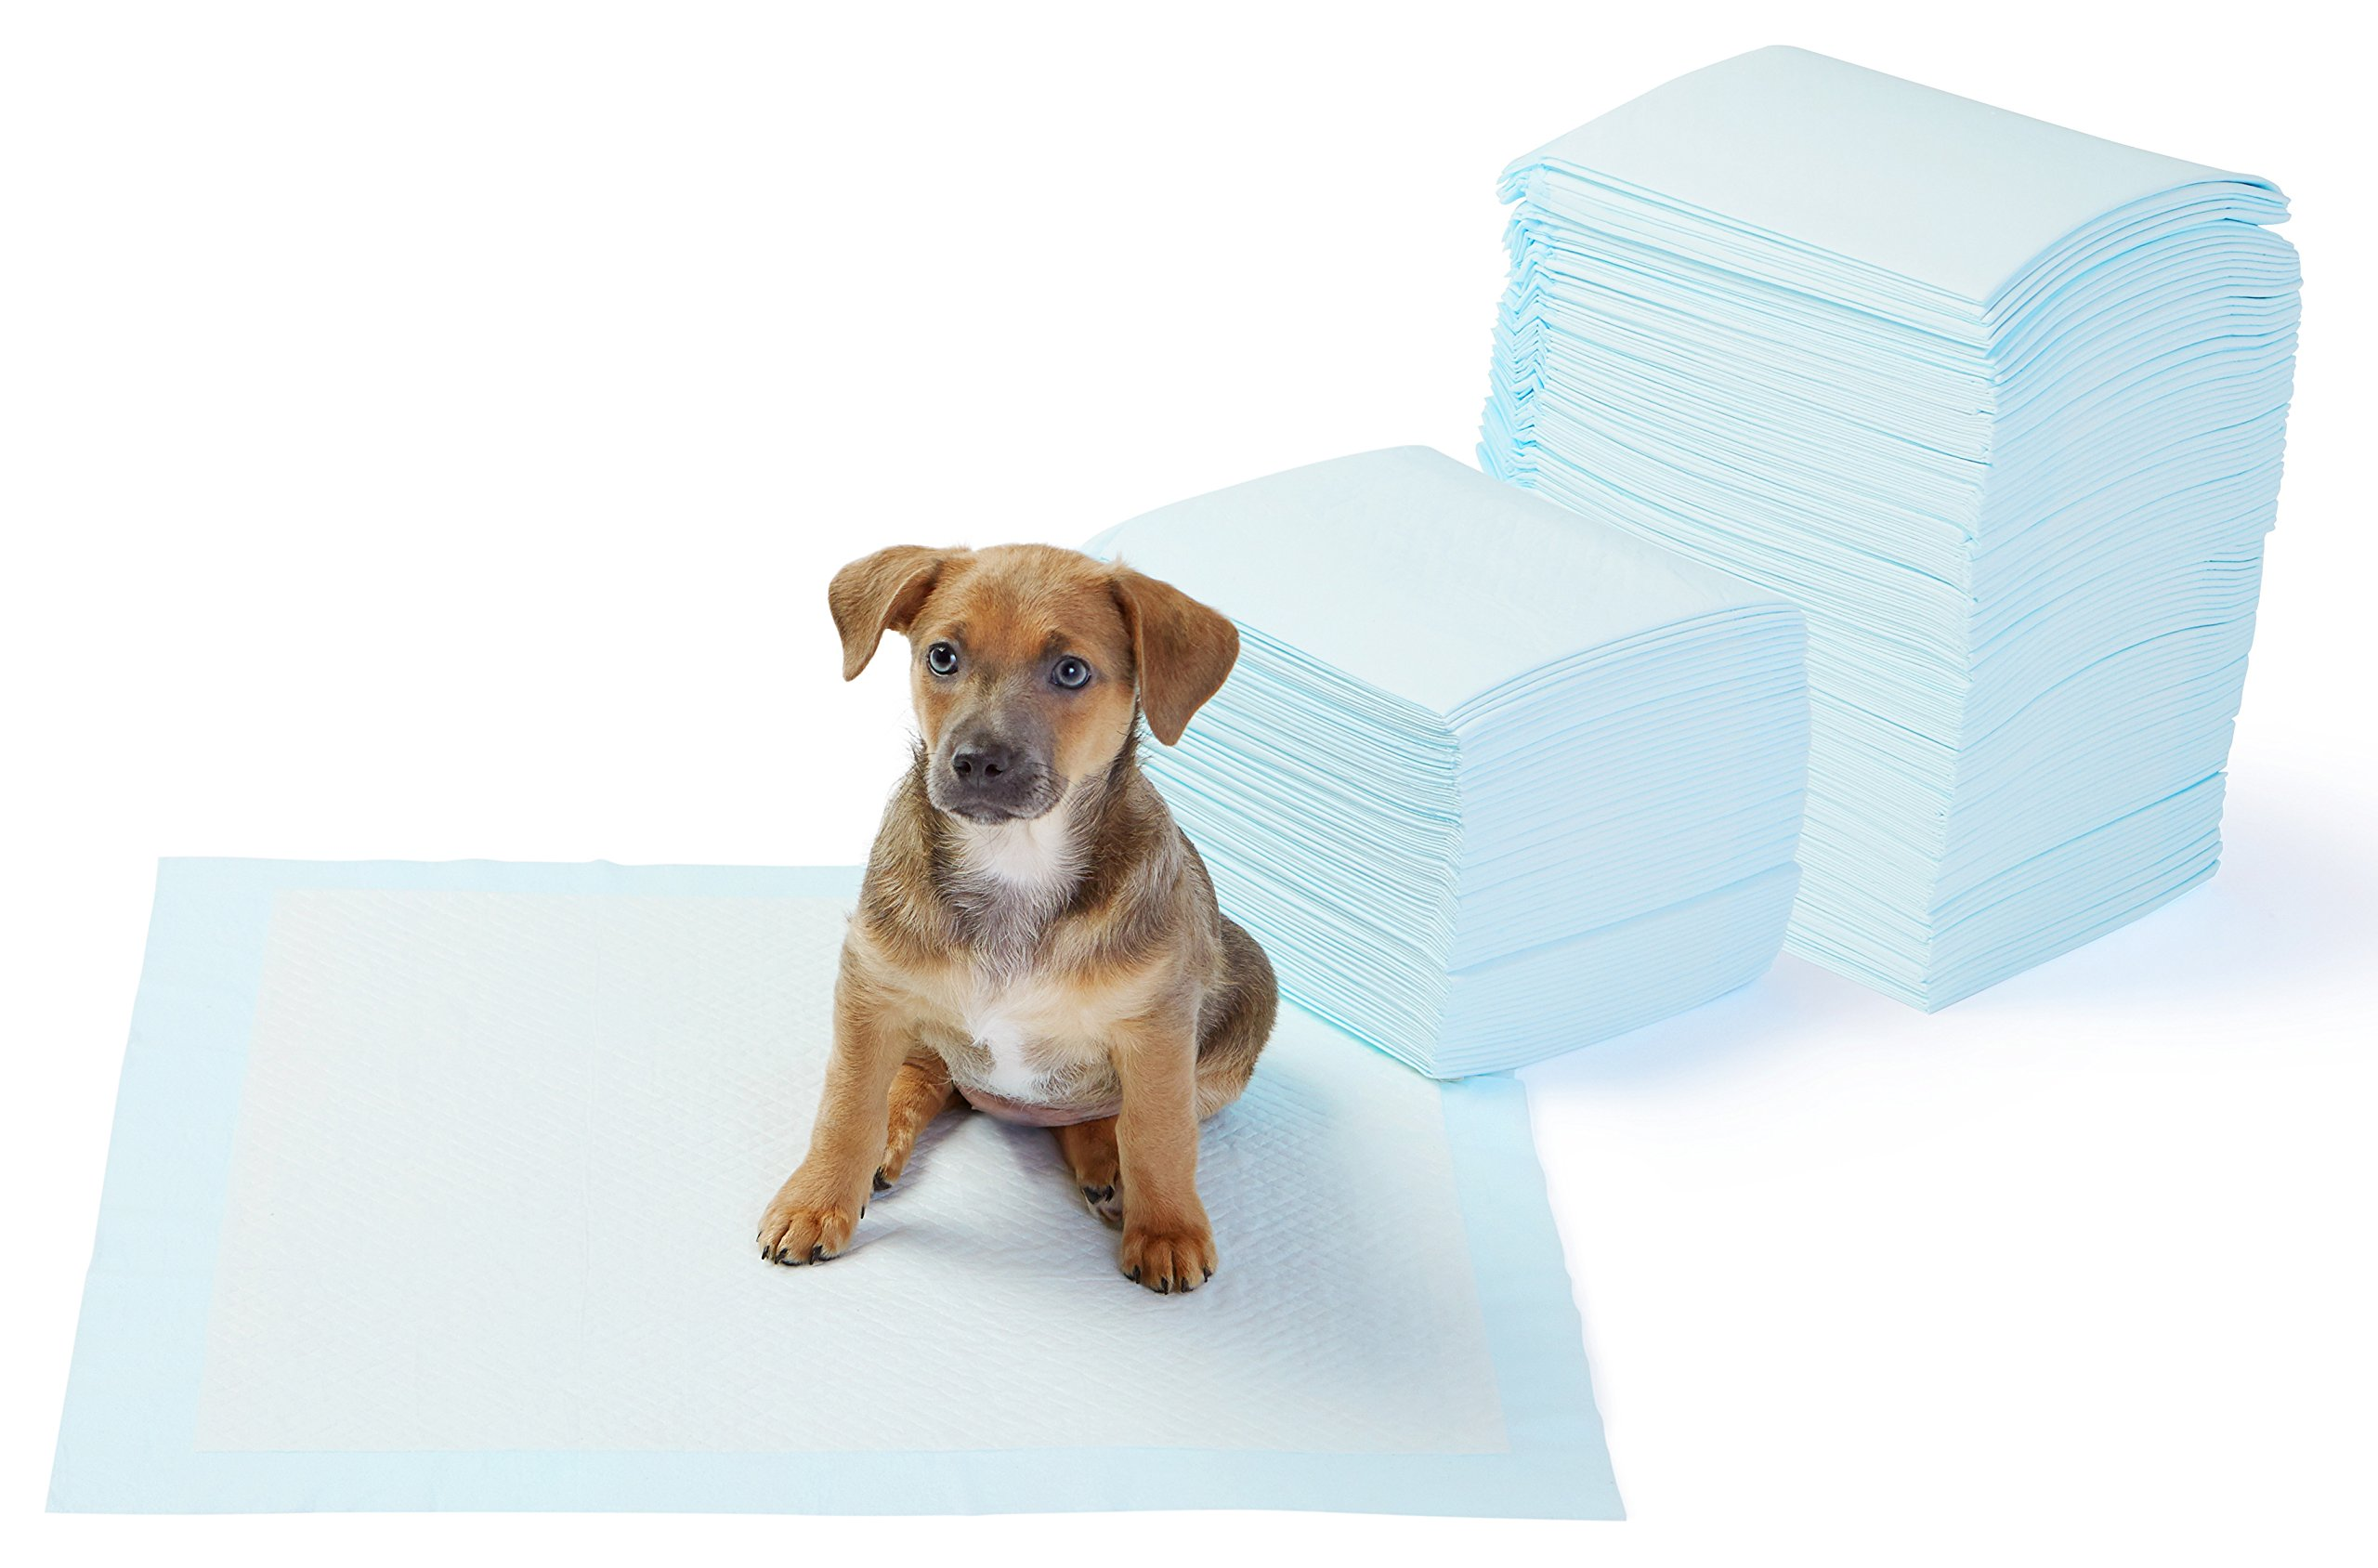 AmazonBasics Regular Pet Dog and Puppy Training Pads - Pack of 150 by AmazonBasics